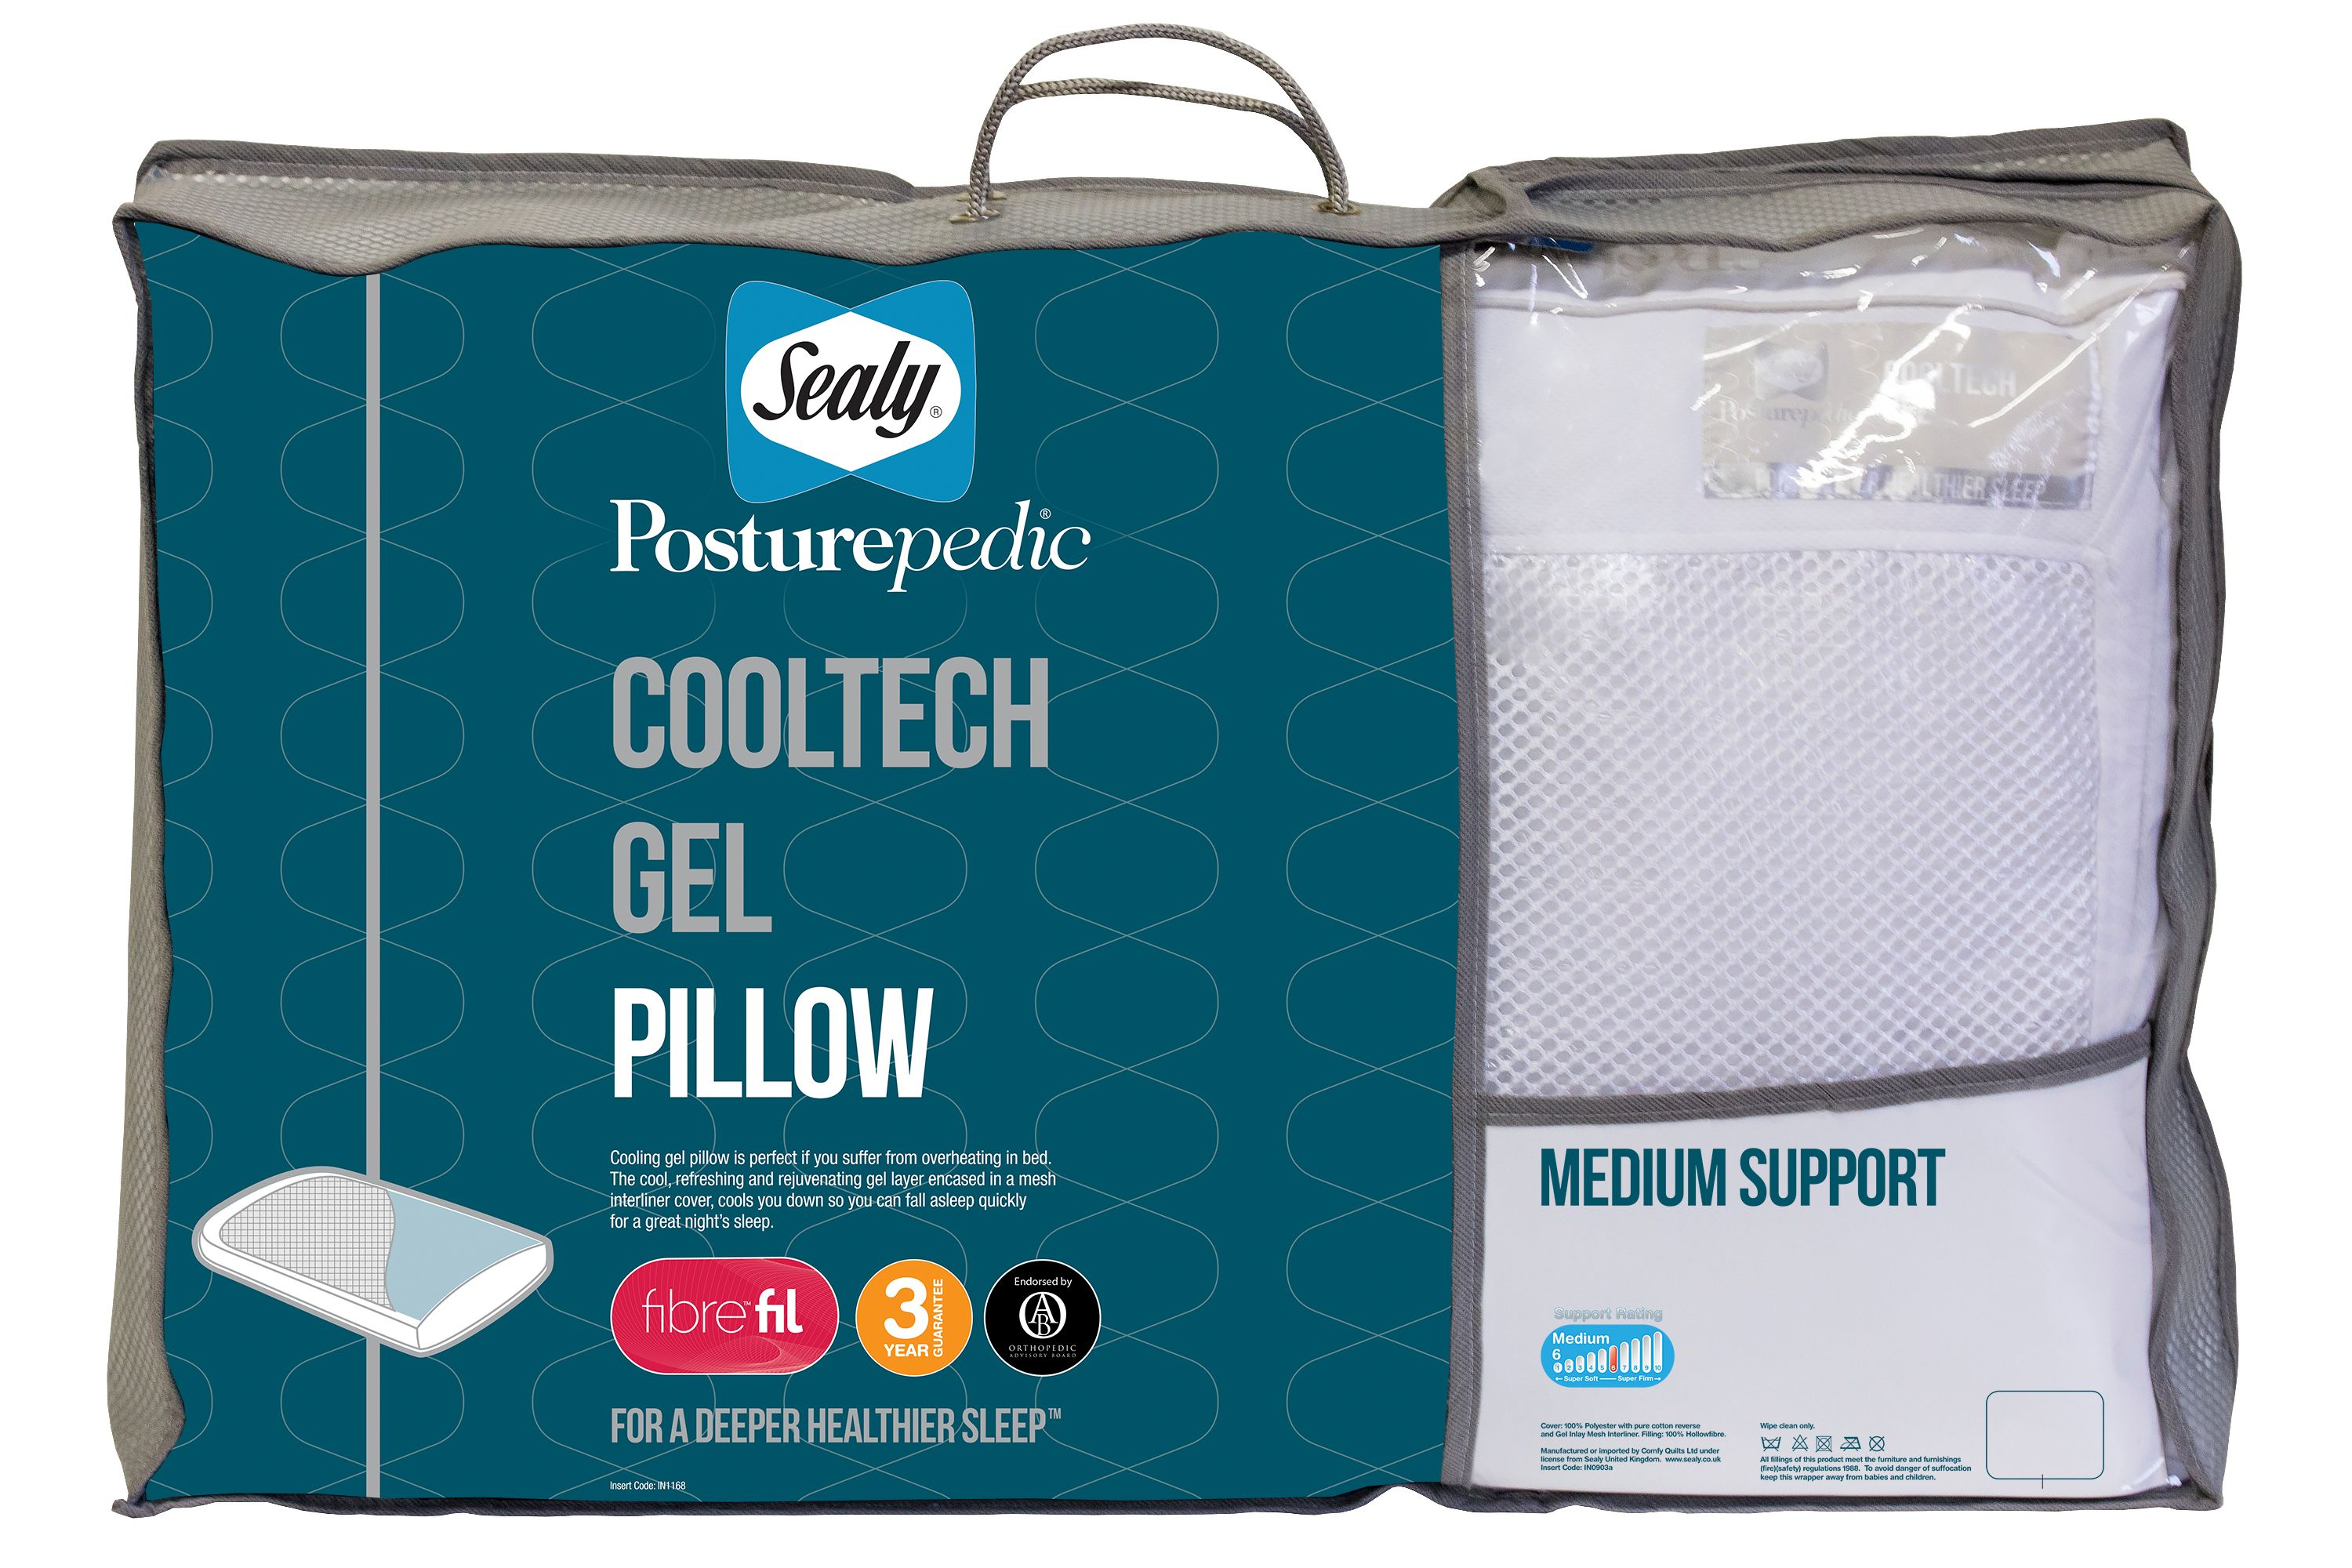 Image of Sealy Posturepedic cooltech gel pillow